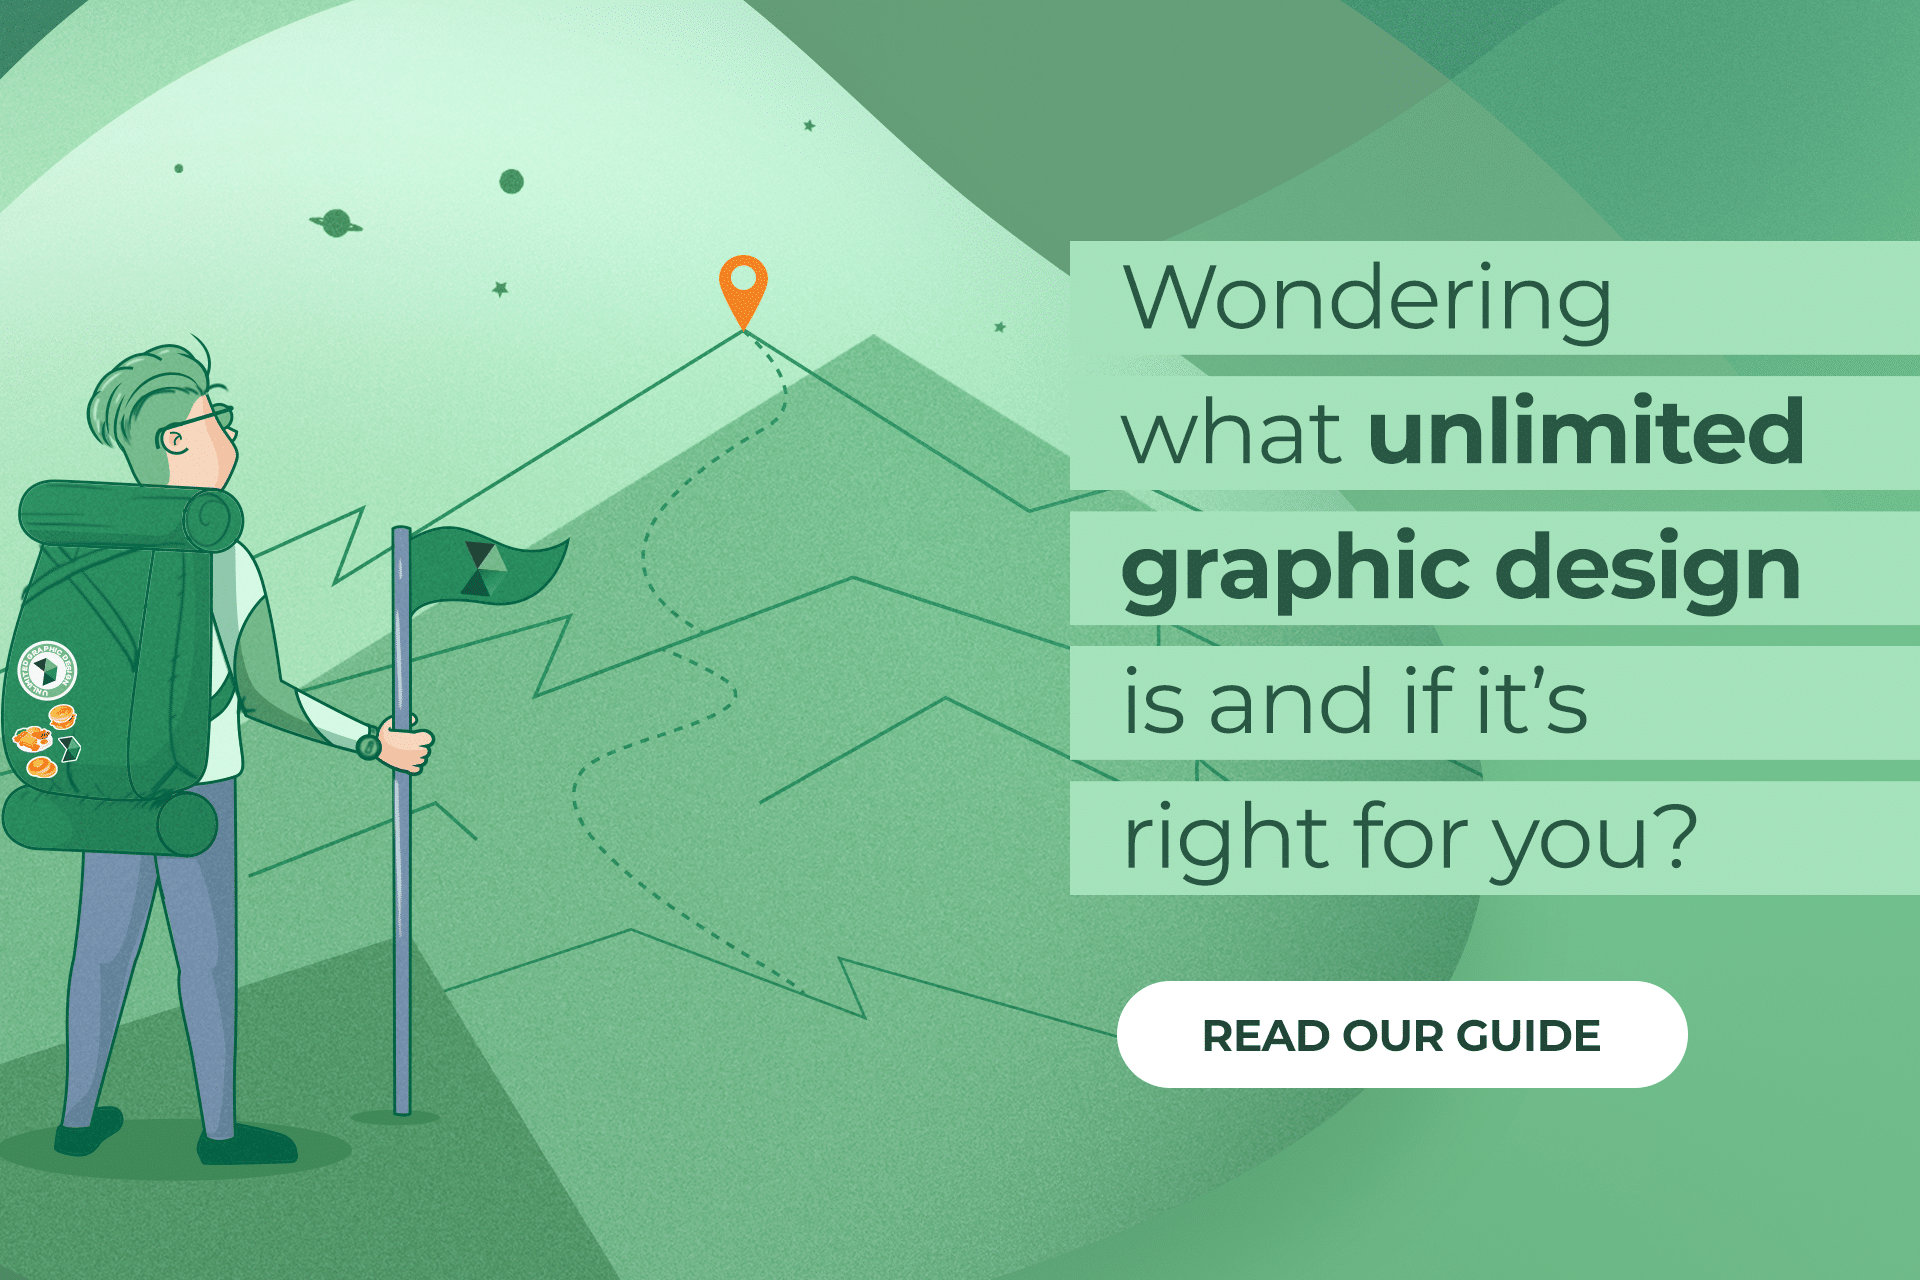 Find out if unlimited graphic design is right for you